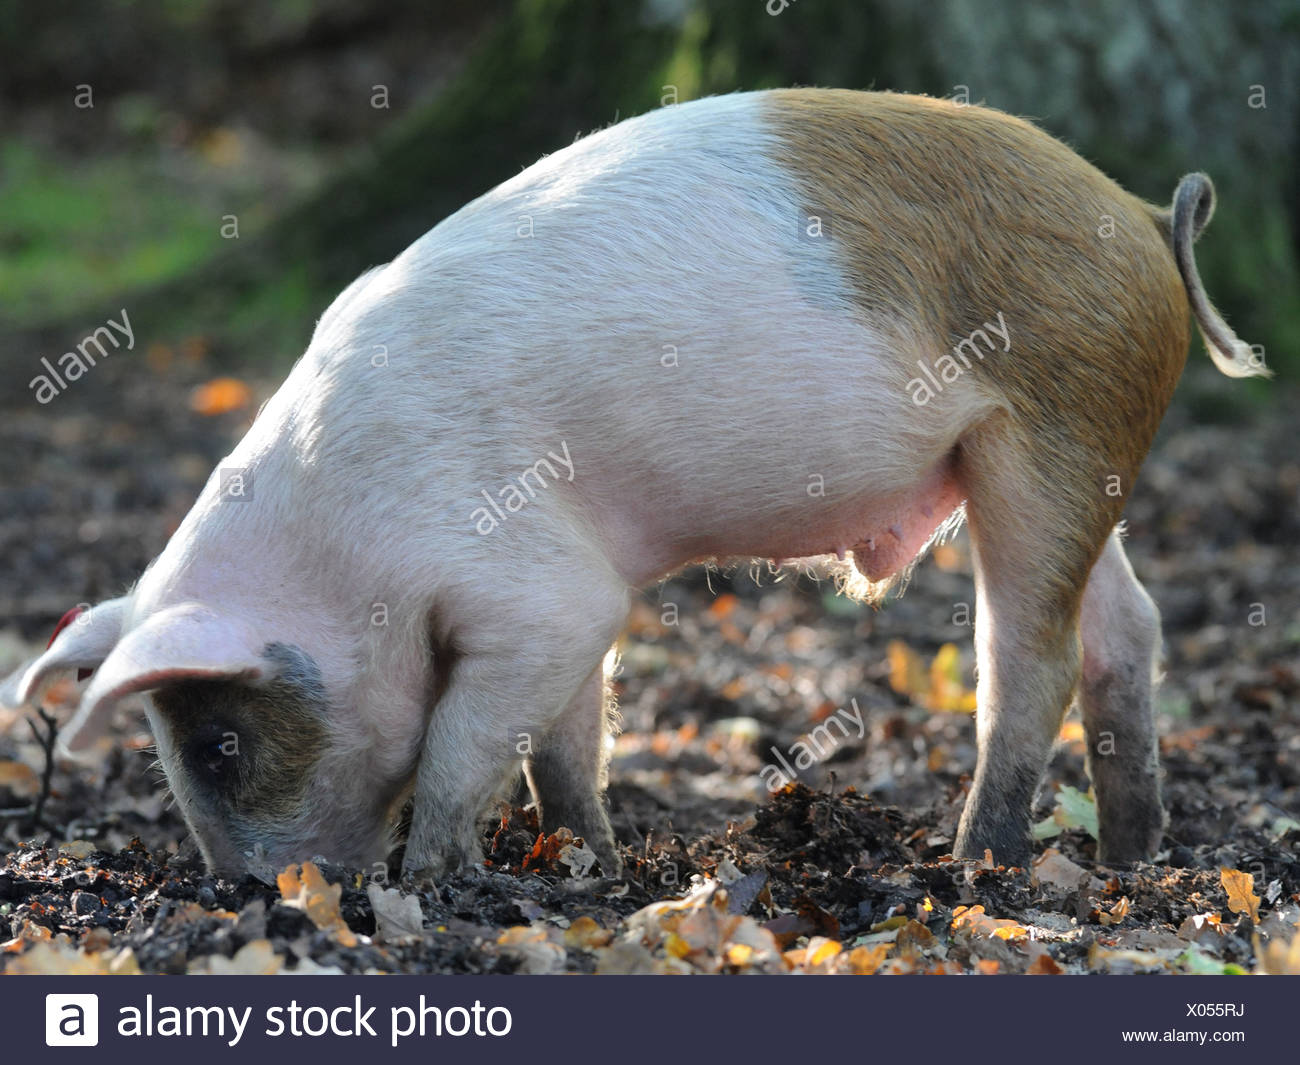 A pig in The New Forest hunting for acorns and digging with his nose. - Stock Image